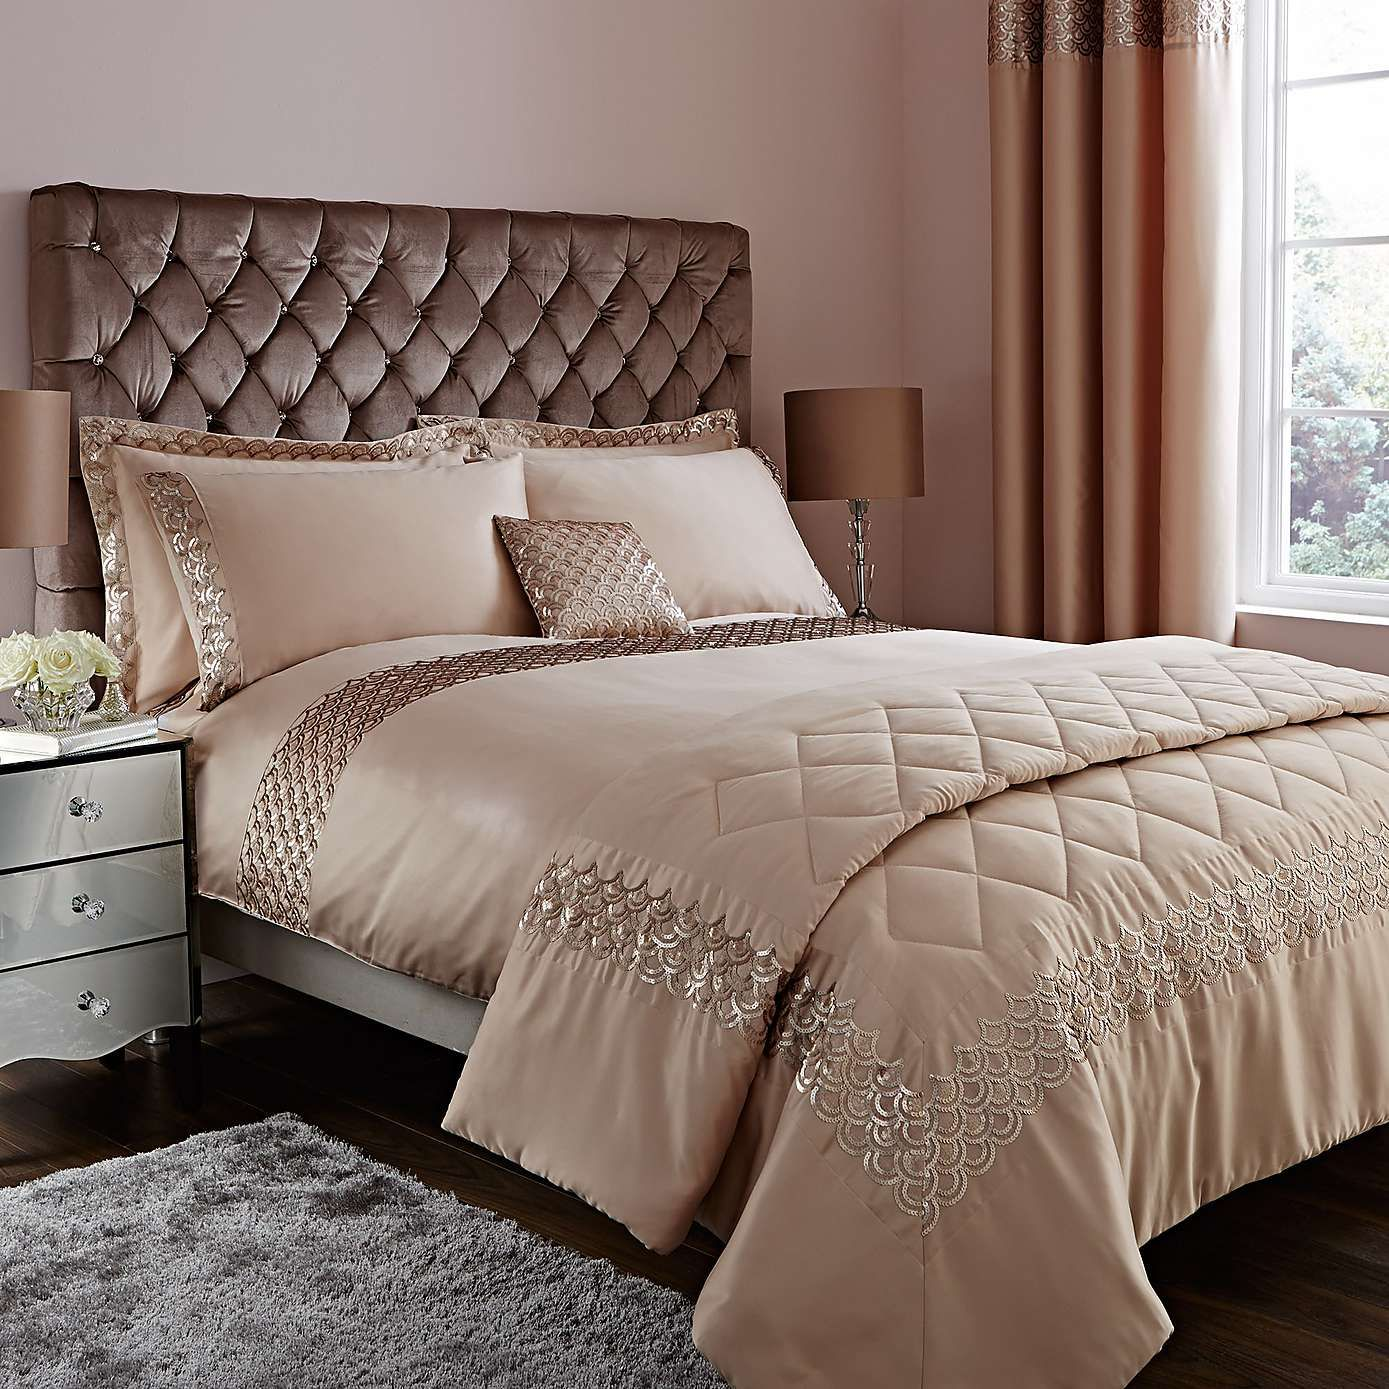 Bedroom Sets Wooden Bedroom Lighting Dunelm Back Bedroom Chairs Cool One Bedroom Apartment Designs: Charleston Champagne Duvet Cover